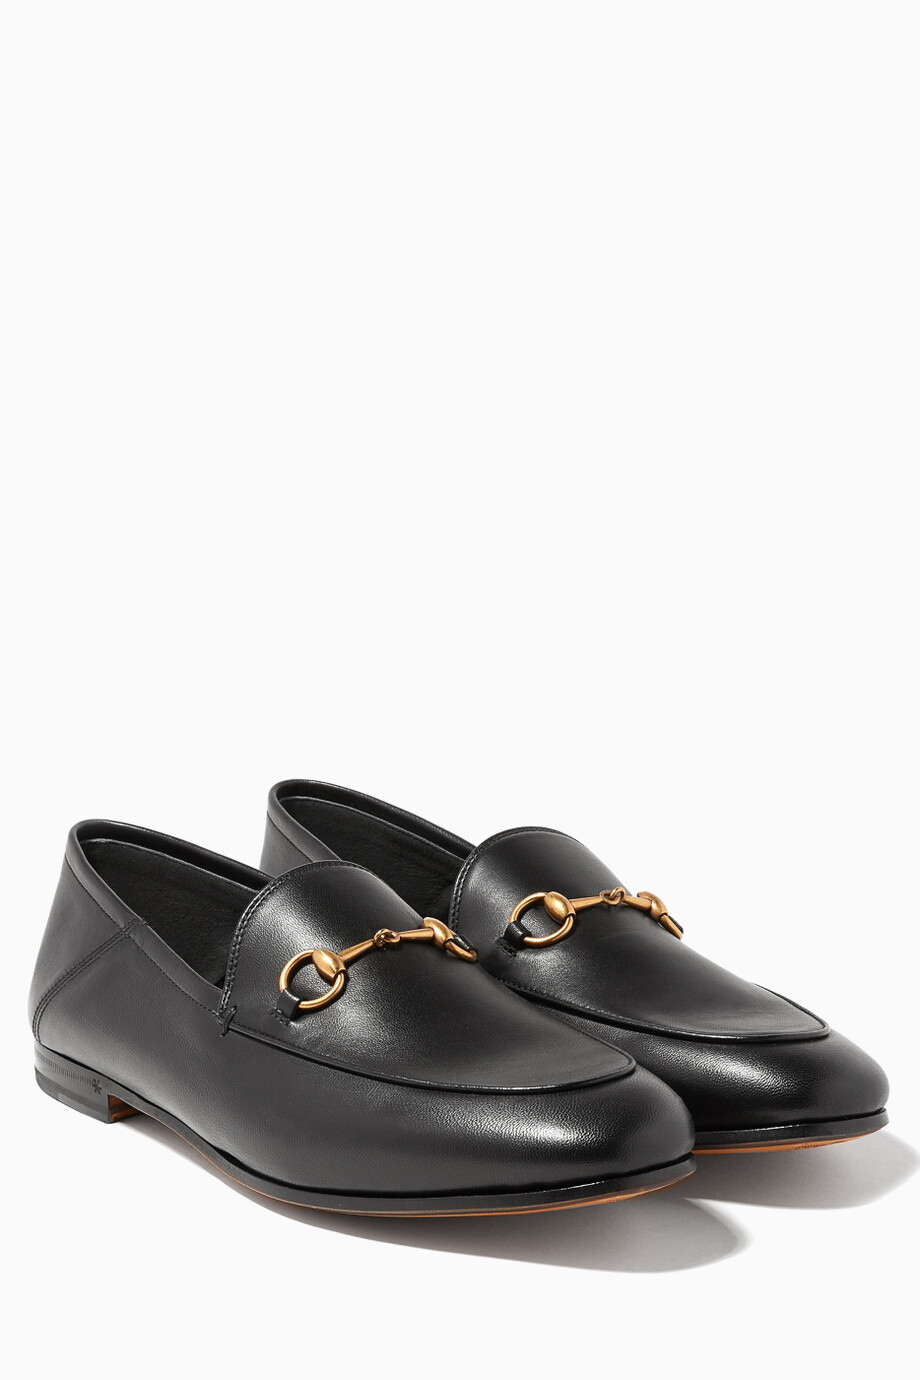 cb081c06511a Shop Gucci Black Black Brixton Leather Loafers for Women